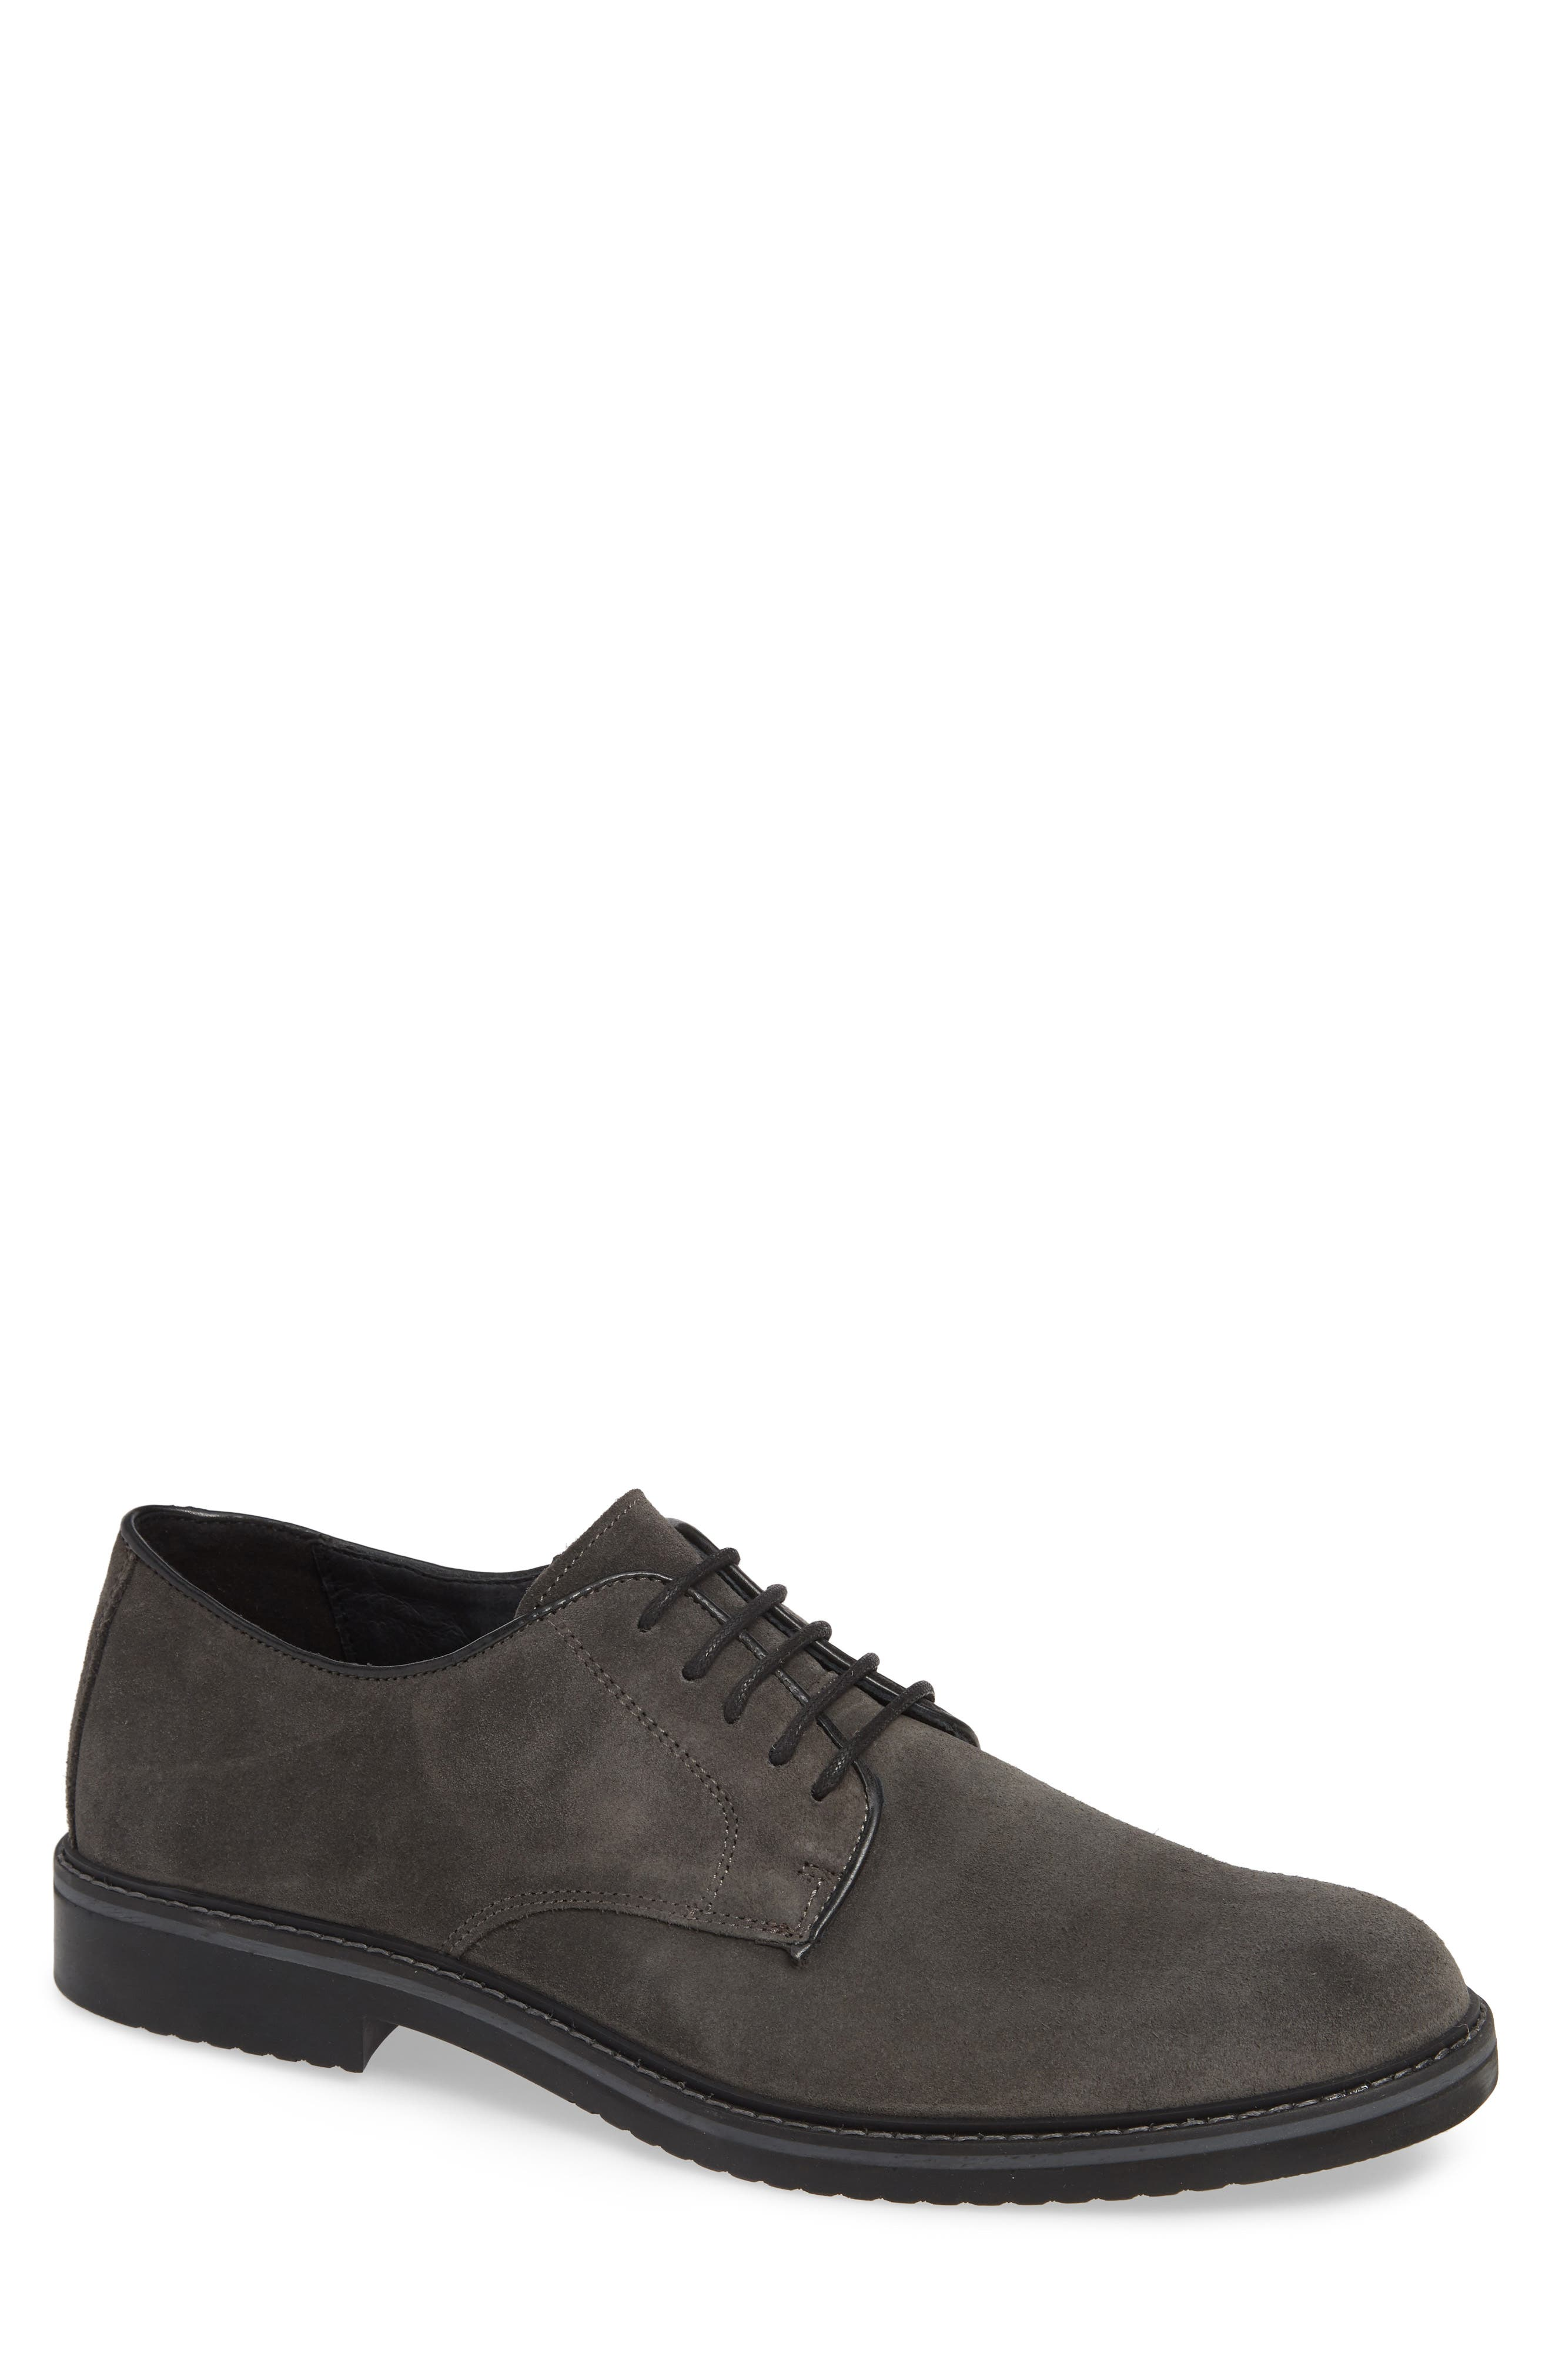 Cardiff Plain Toe Derby,                         Main,                         color, CHARCOAL SUEDE